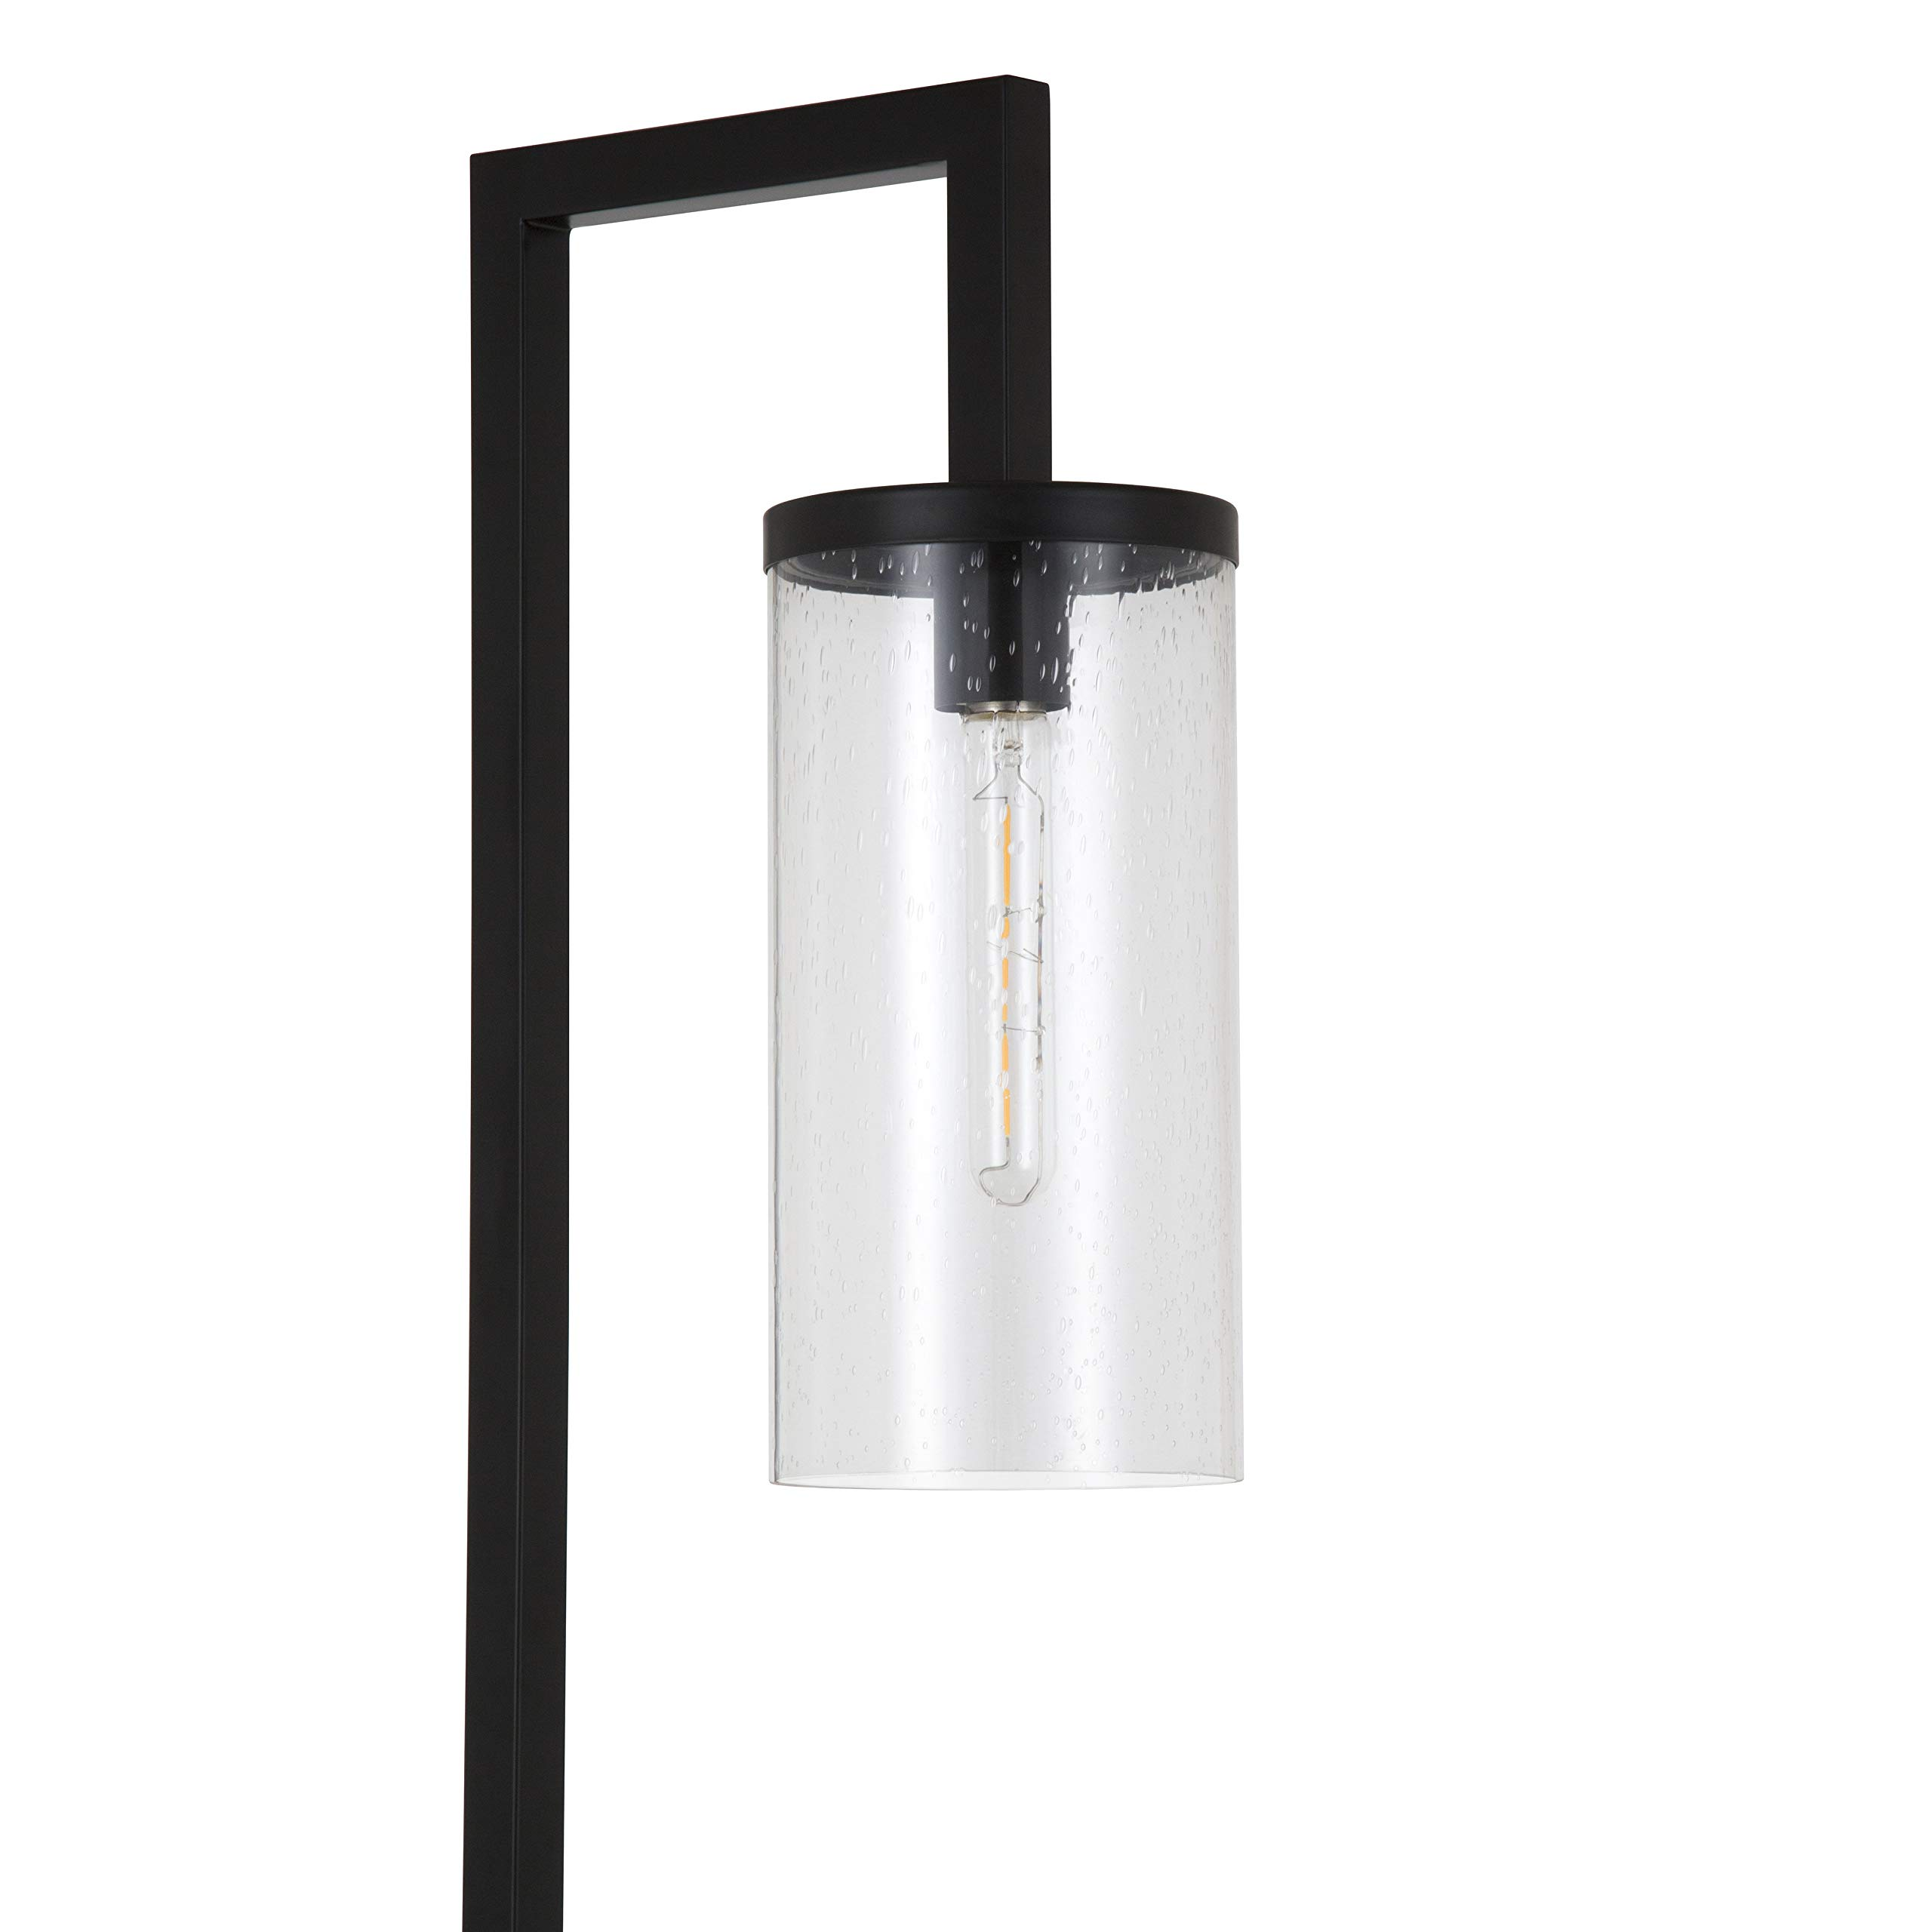 Henn&Hart FL0014 Modern Farmhouse seeded Task Lamp, One Size Black by Henn&Hart (Image #6)